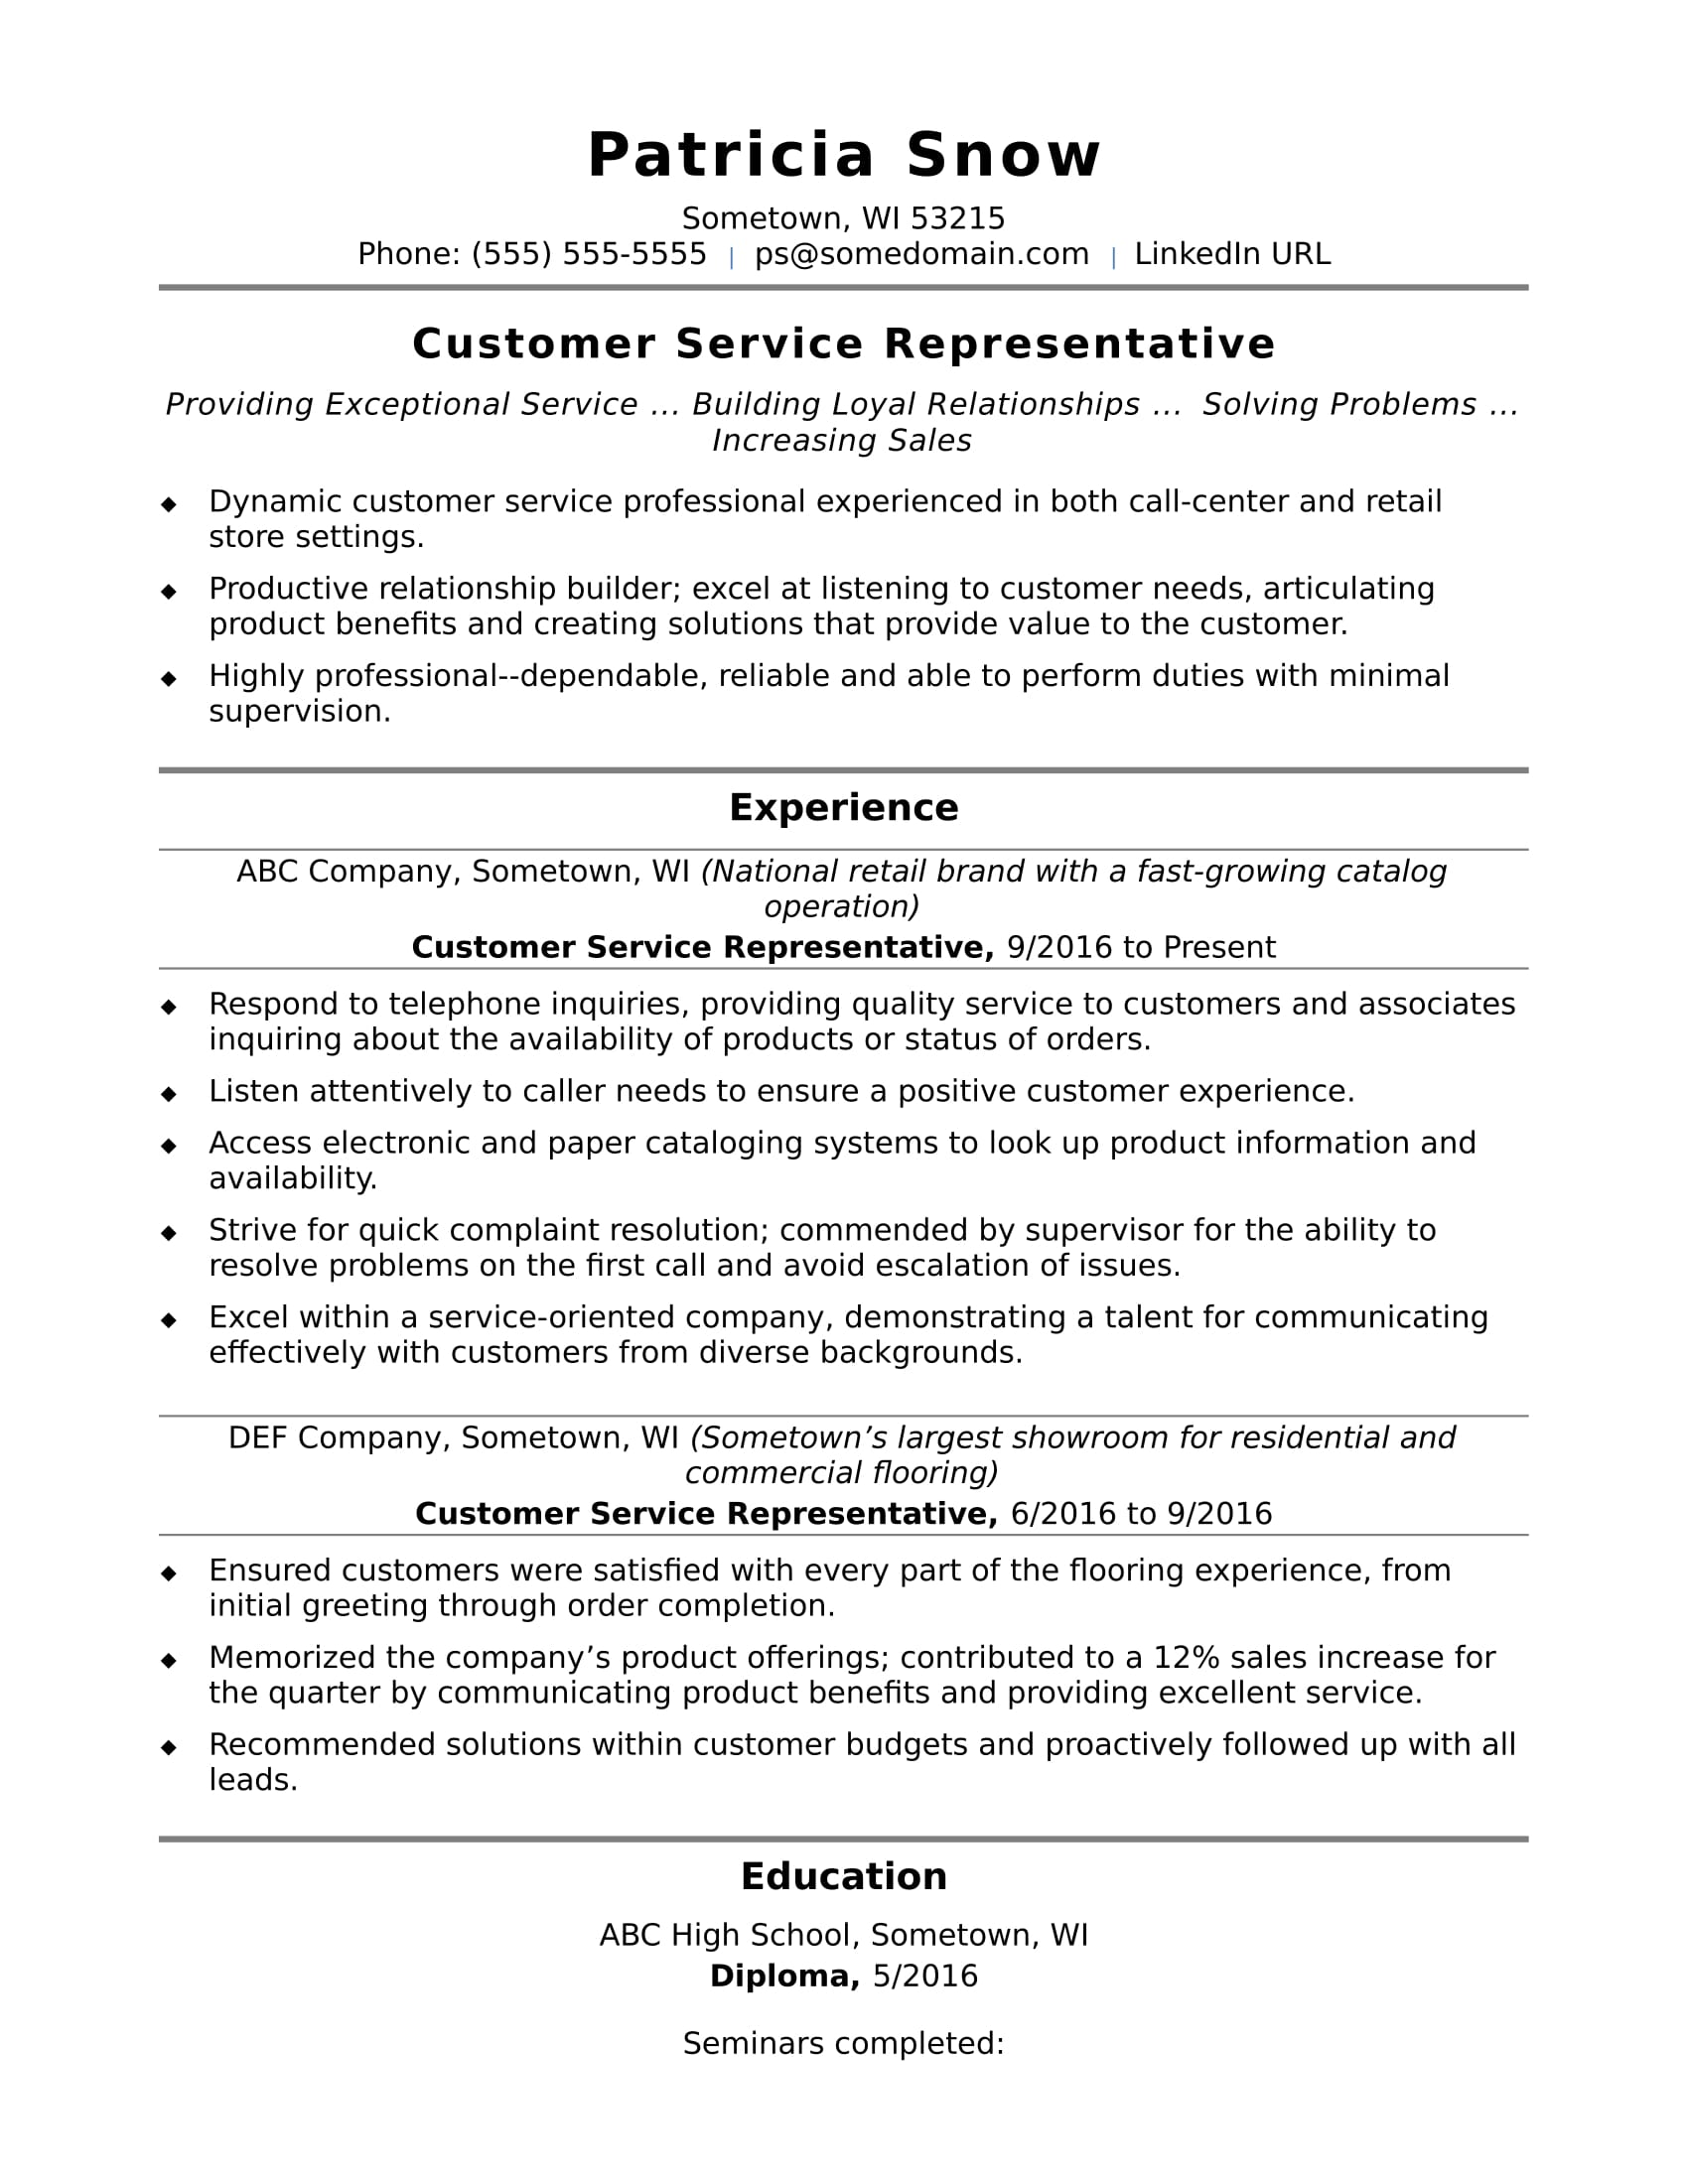 customer service representative resume sample monster skills examples entry level school Resume Customer Service Skills Resume Examples